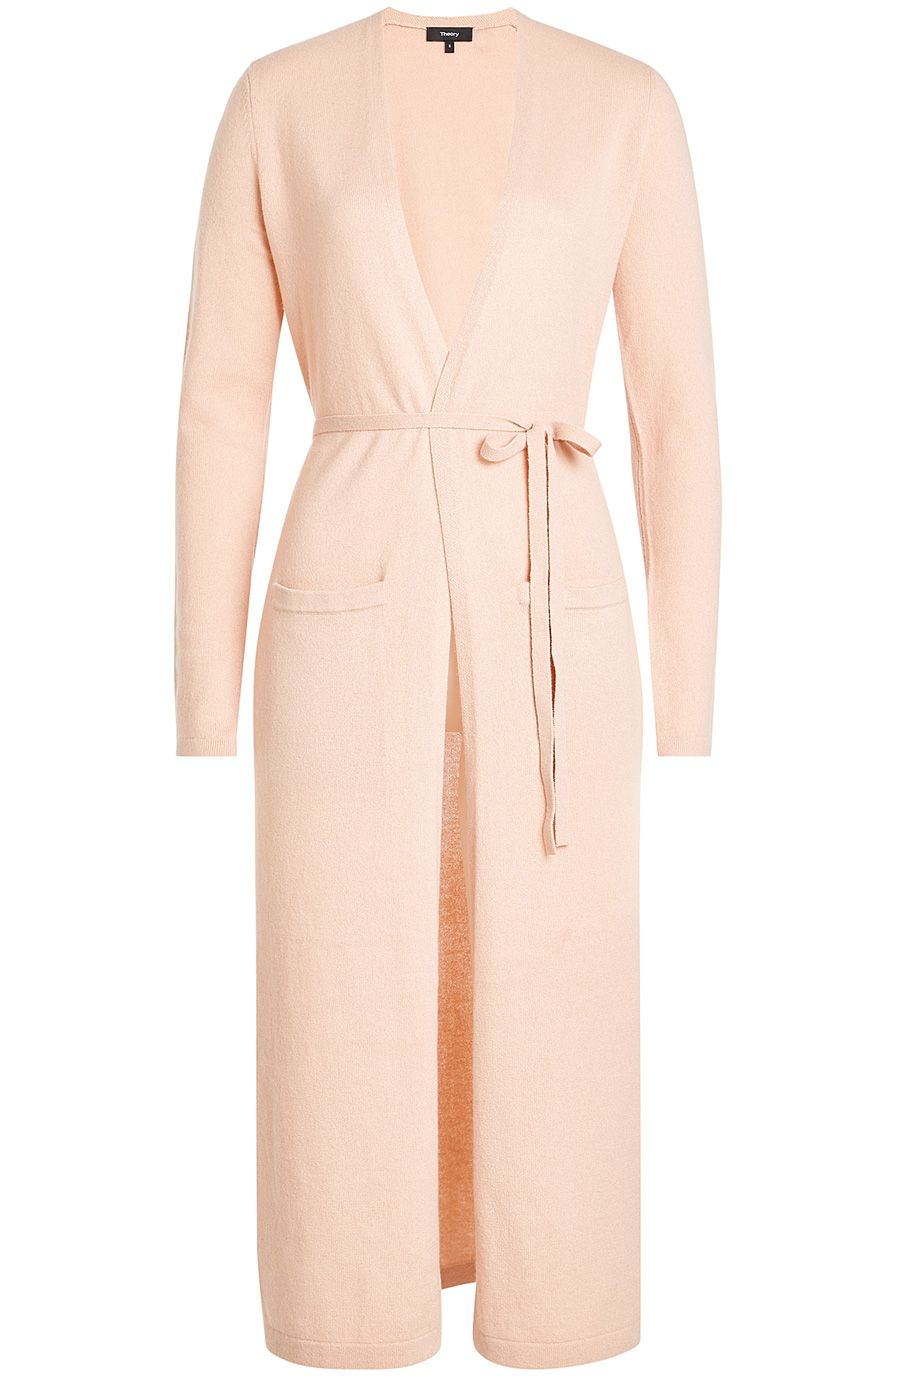 THEORY - Belted Cashmere Cardigan | STYLEBOP